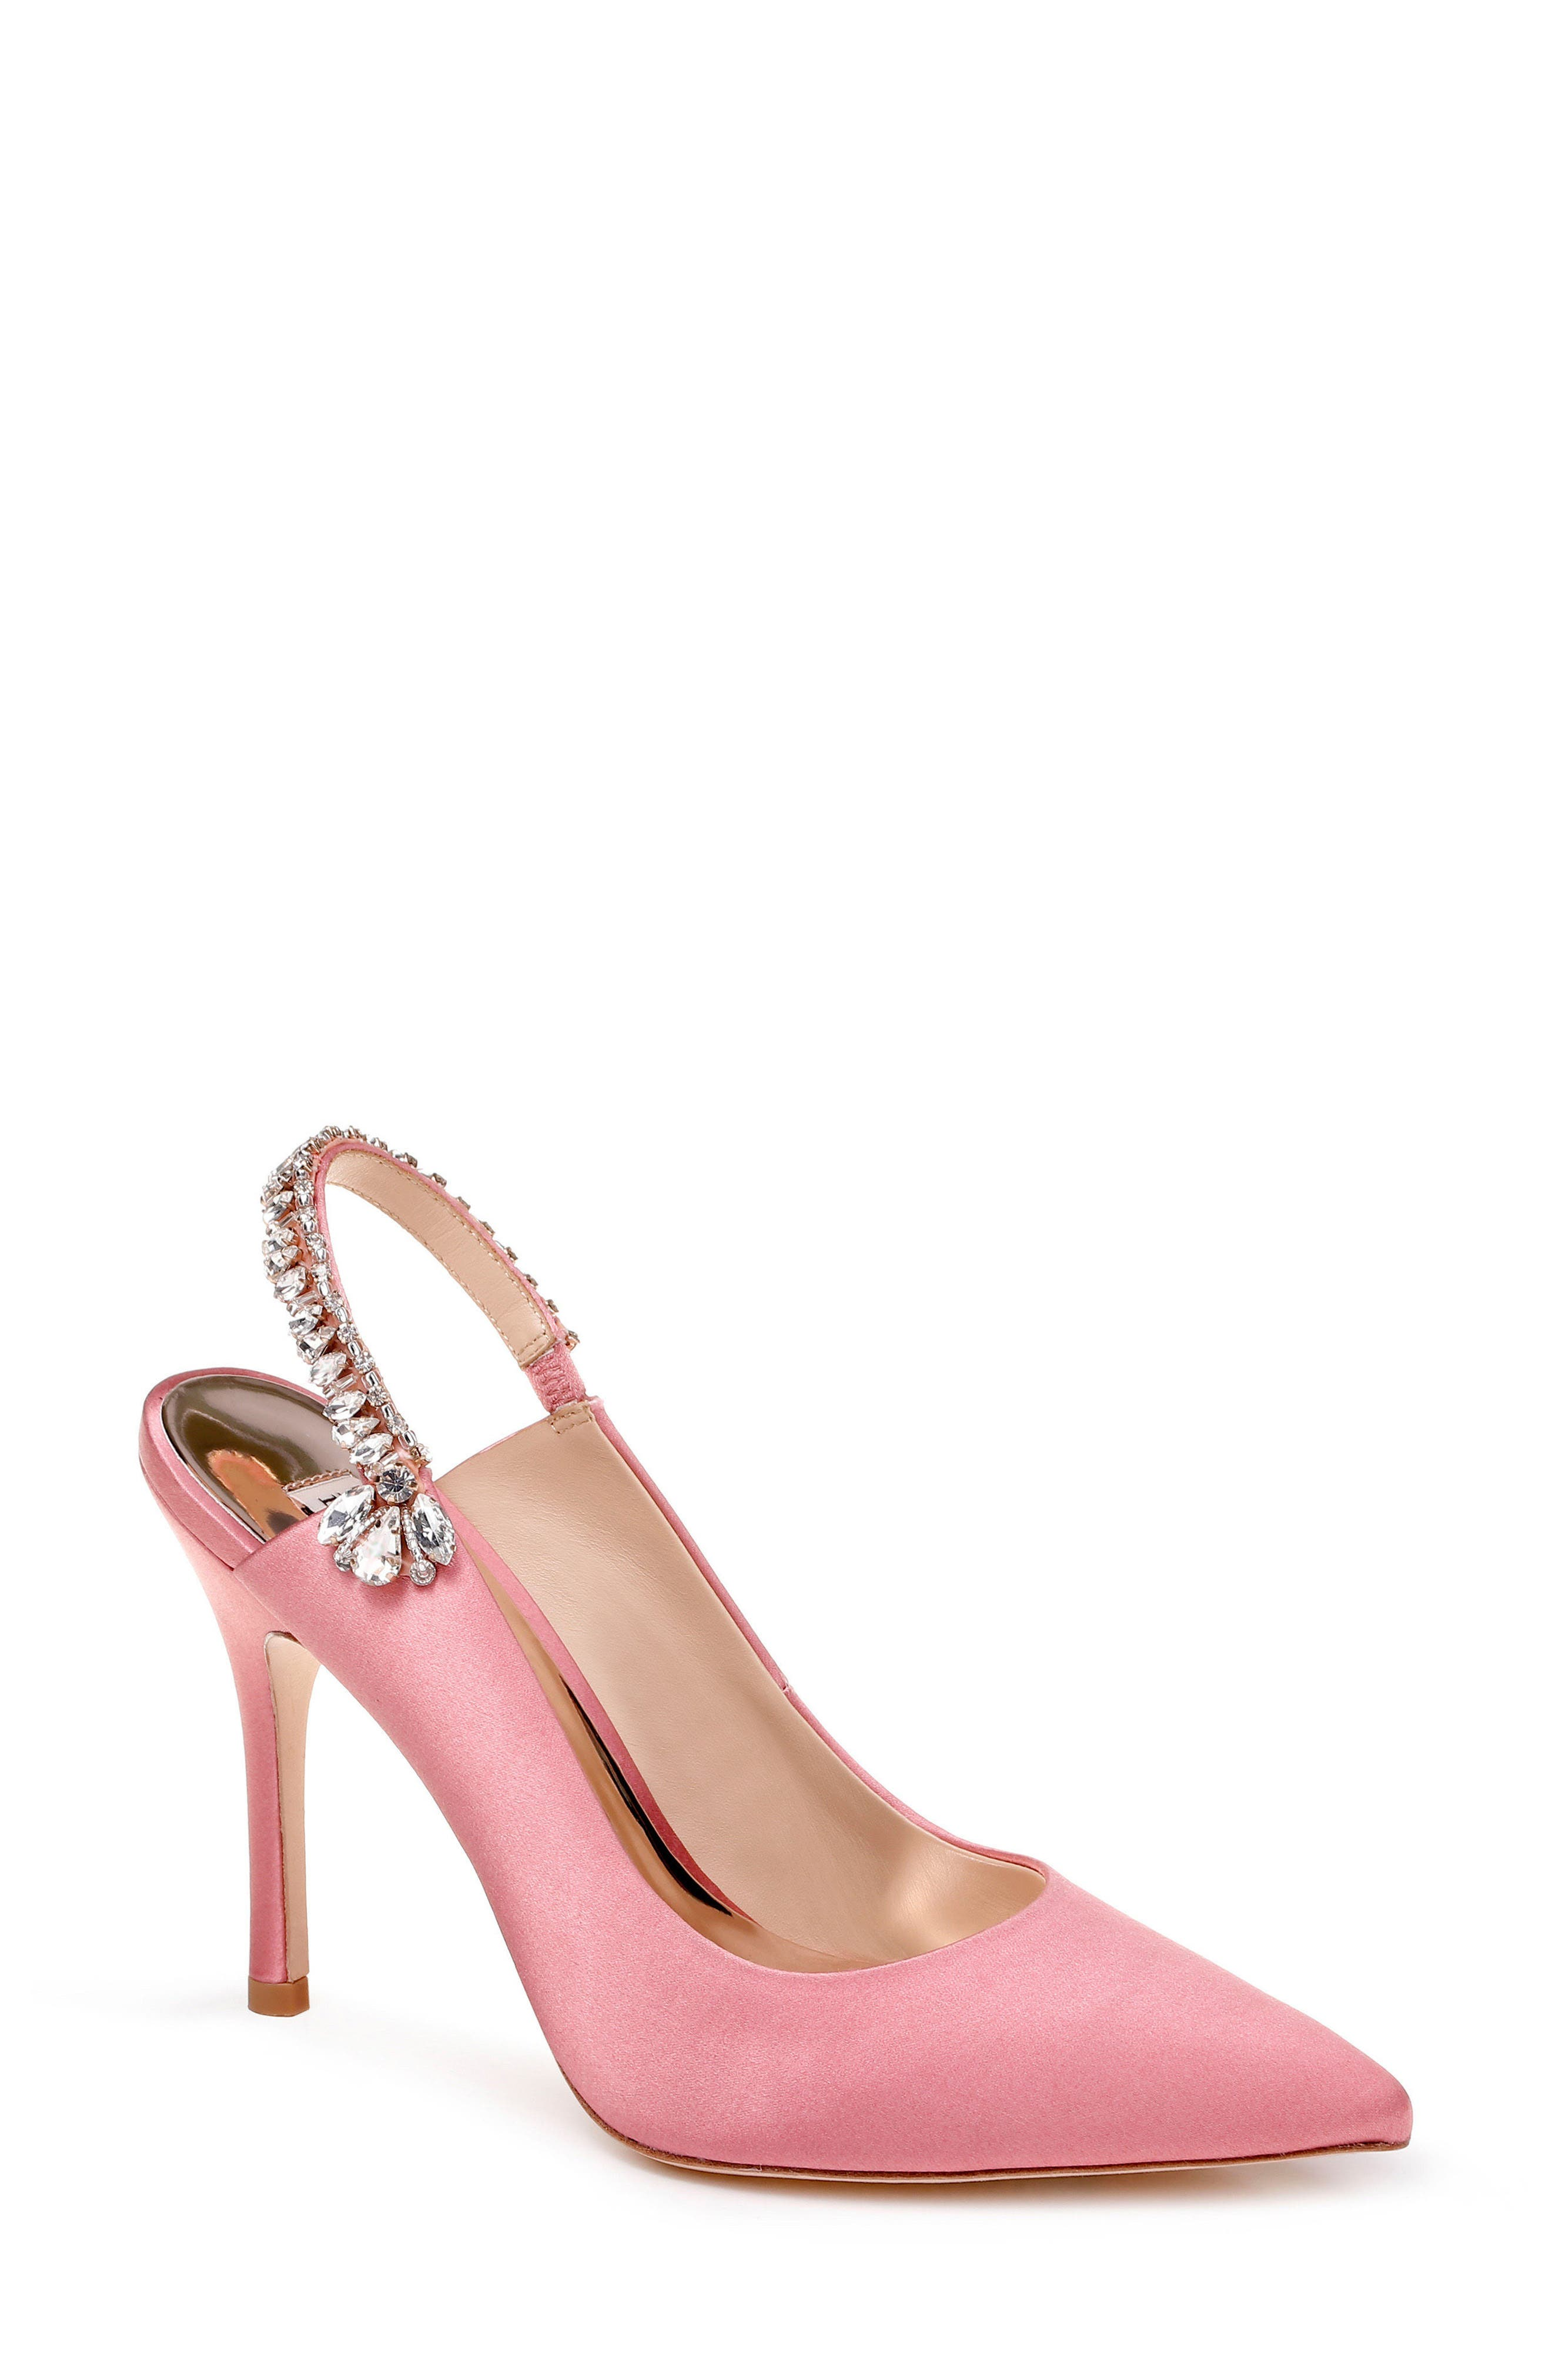 Paxton Pointy Toe Slingback Pump,                         Main,                         color, ROSE SATIN